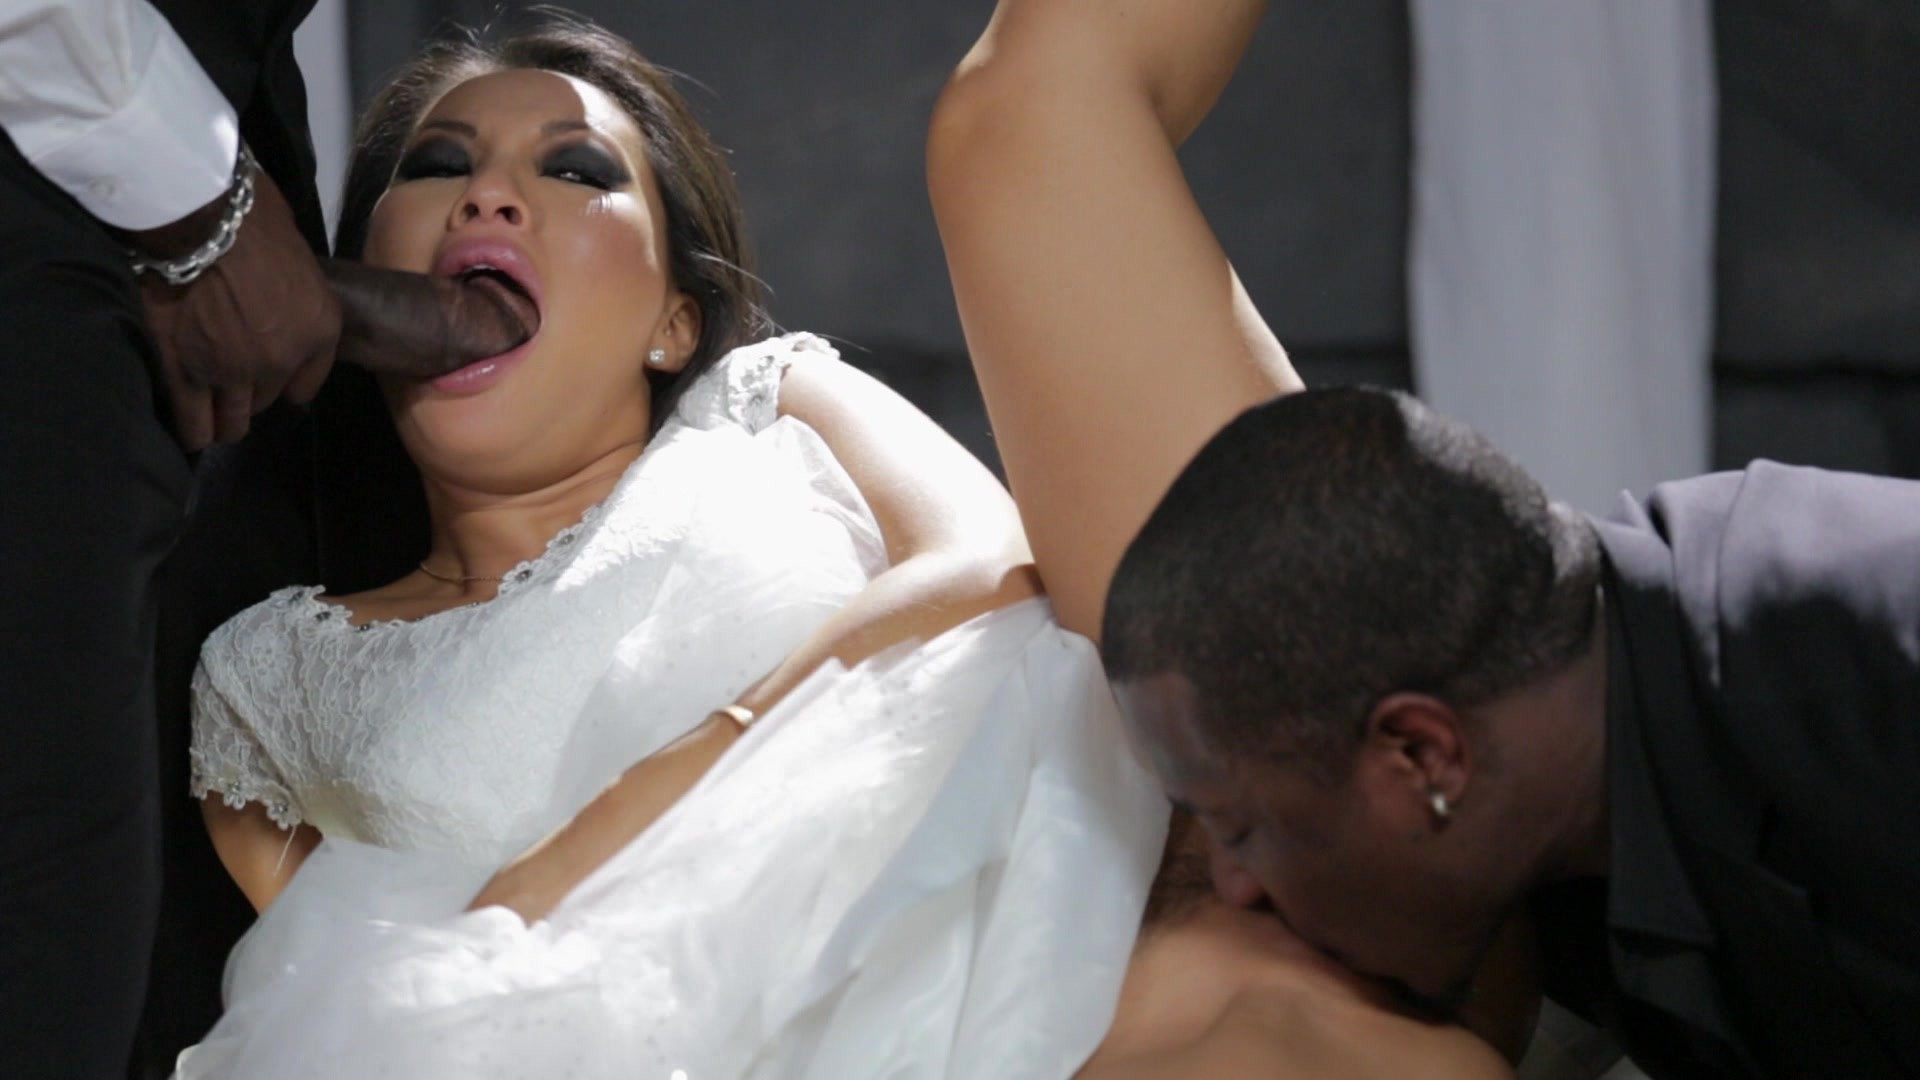 Scene with Asa Akira, Rob Piper XXX and Moe Johnson - image 5 out of 20